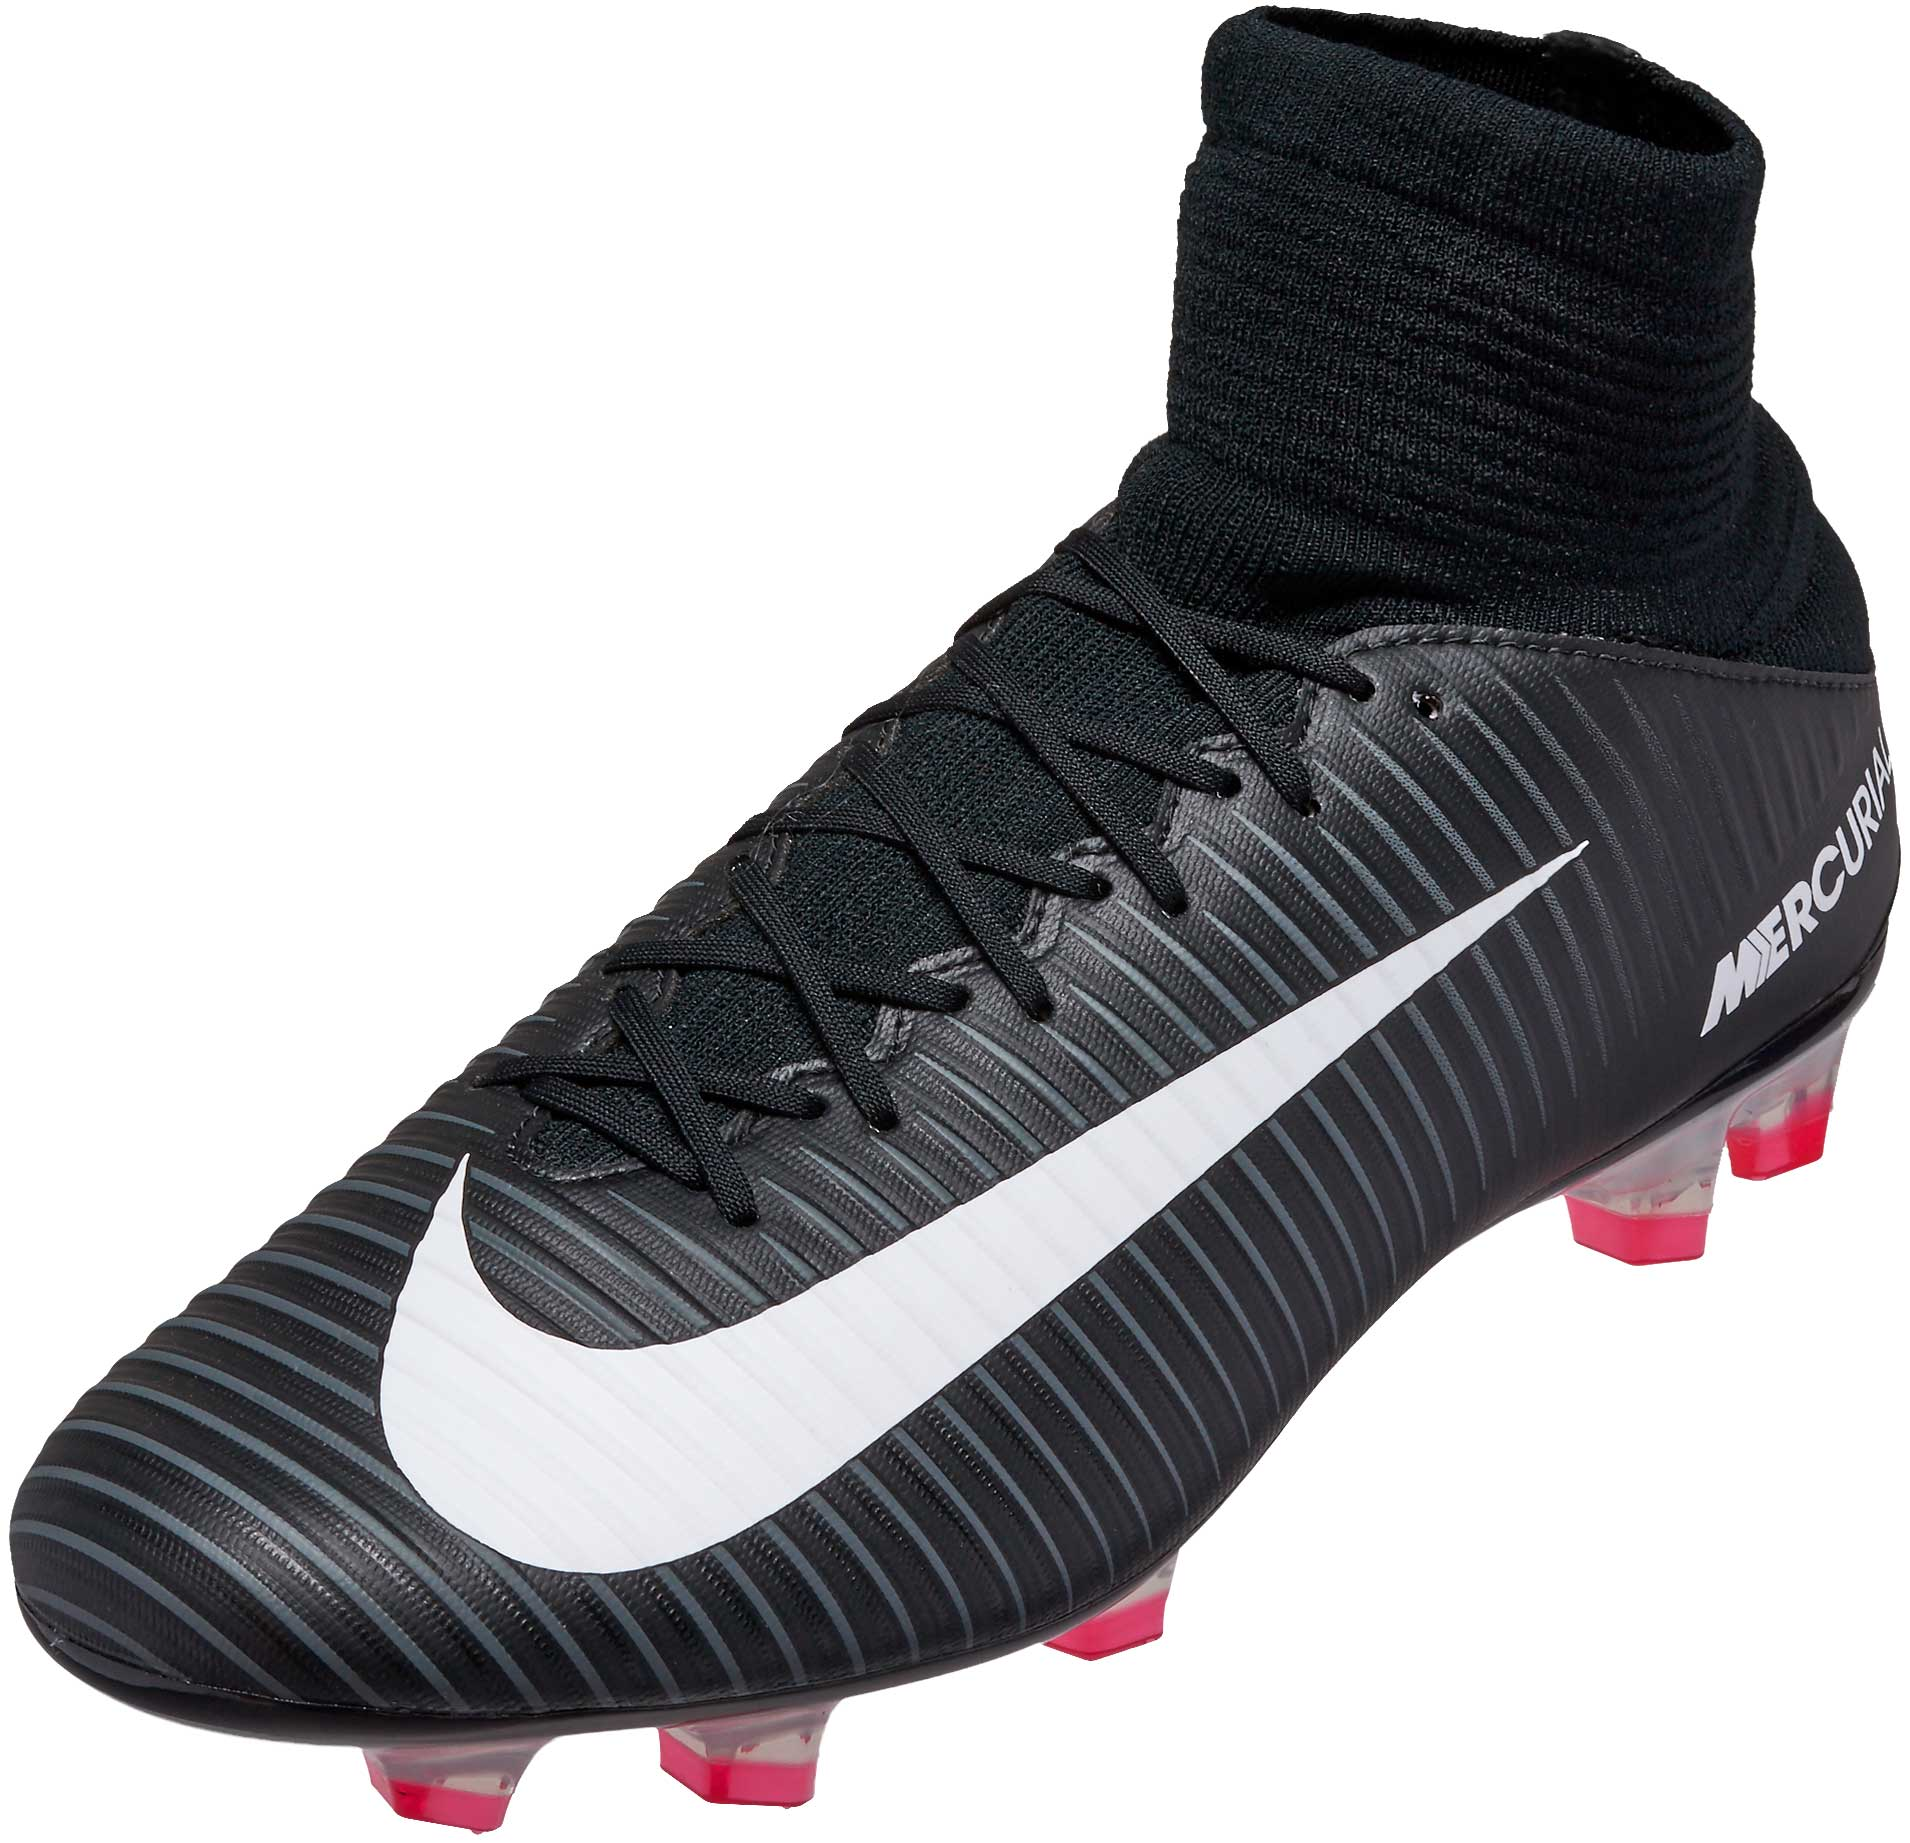 Contrapartida El aparato distrito  Nike Mercurial Veloce III DF FG Soccer Cleats Black and White- SoccerPro.com